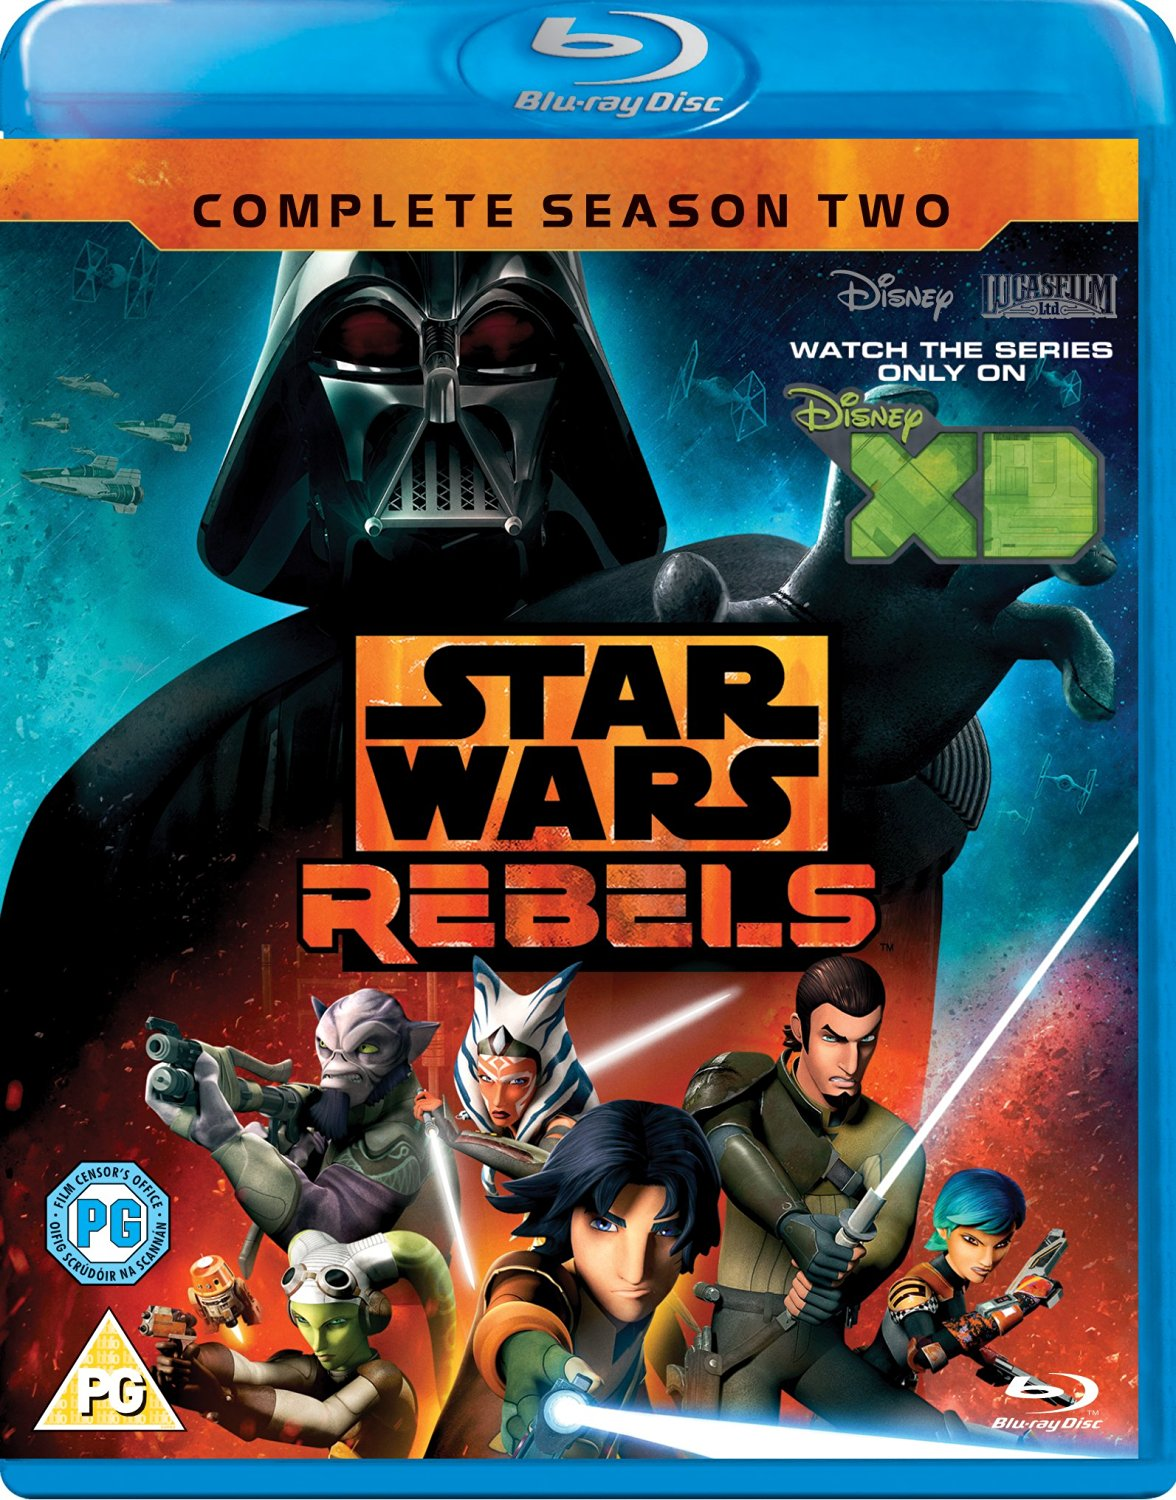 Star Wars Rebels Season 2 review